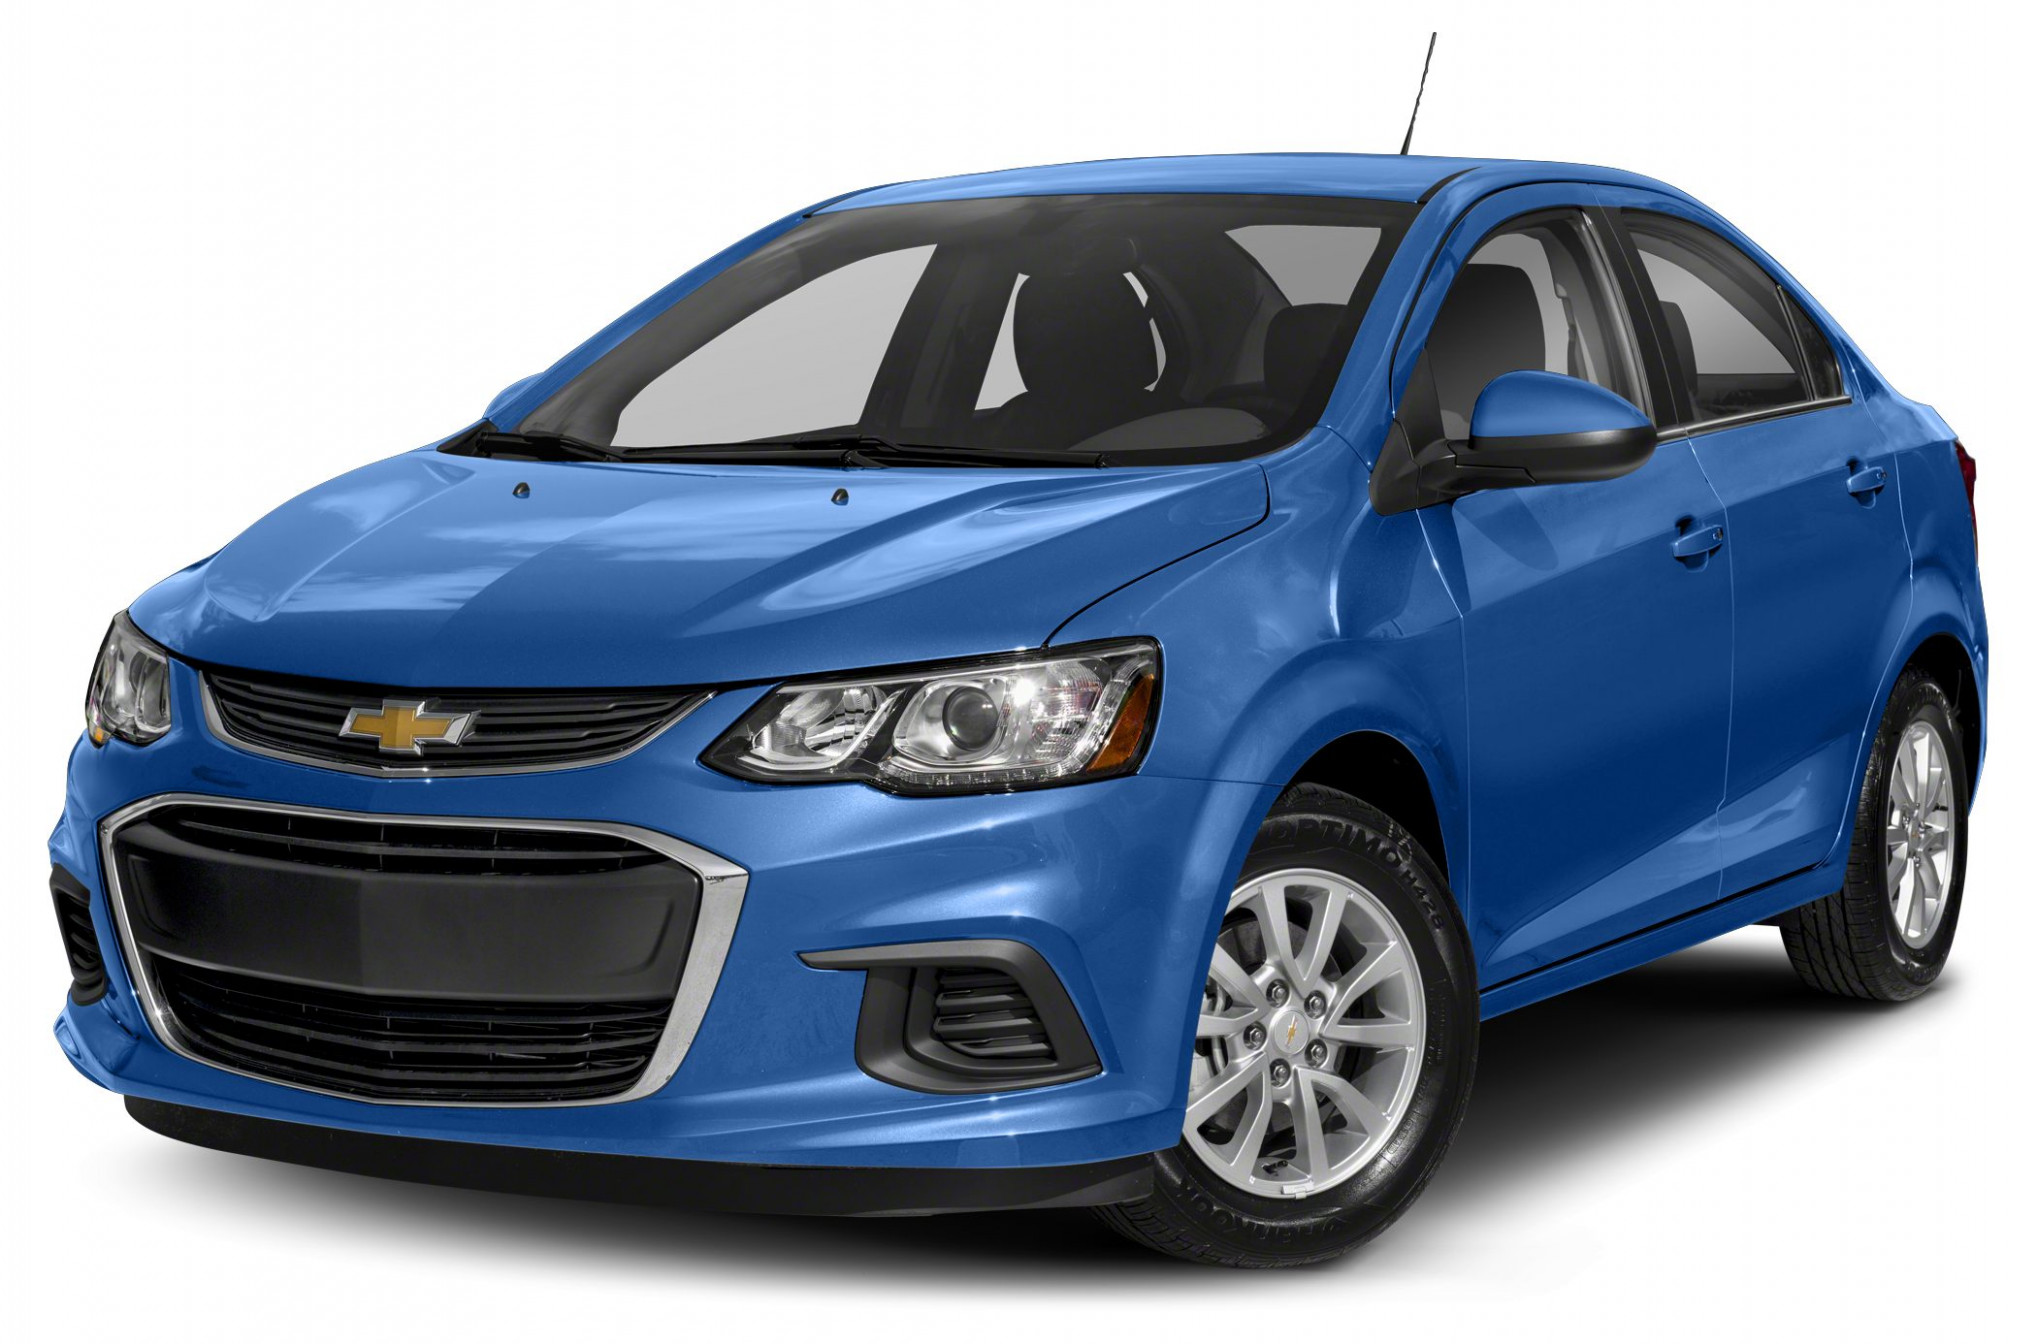 Performance and New Engine 2022 Chevy Sonic